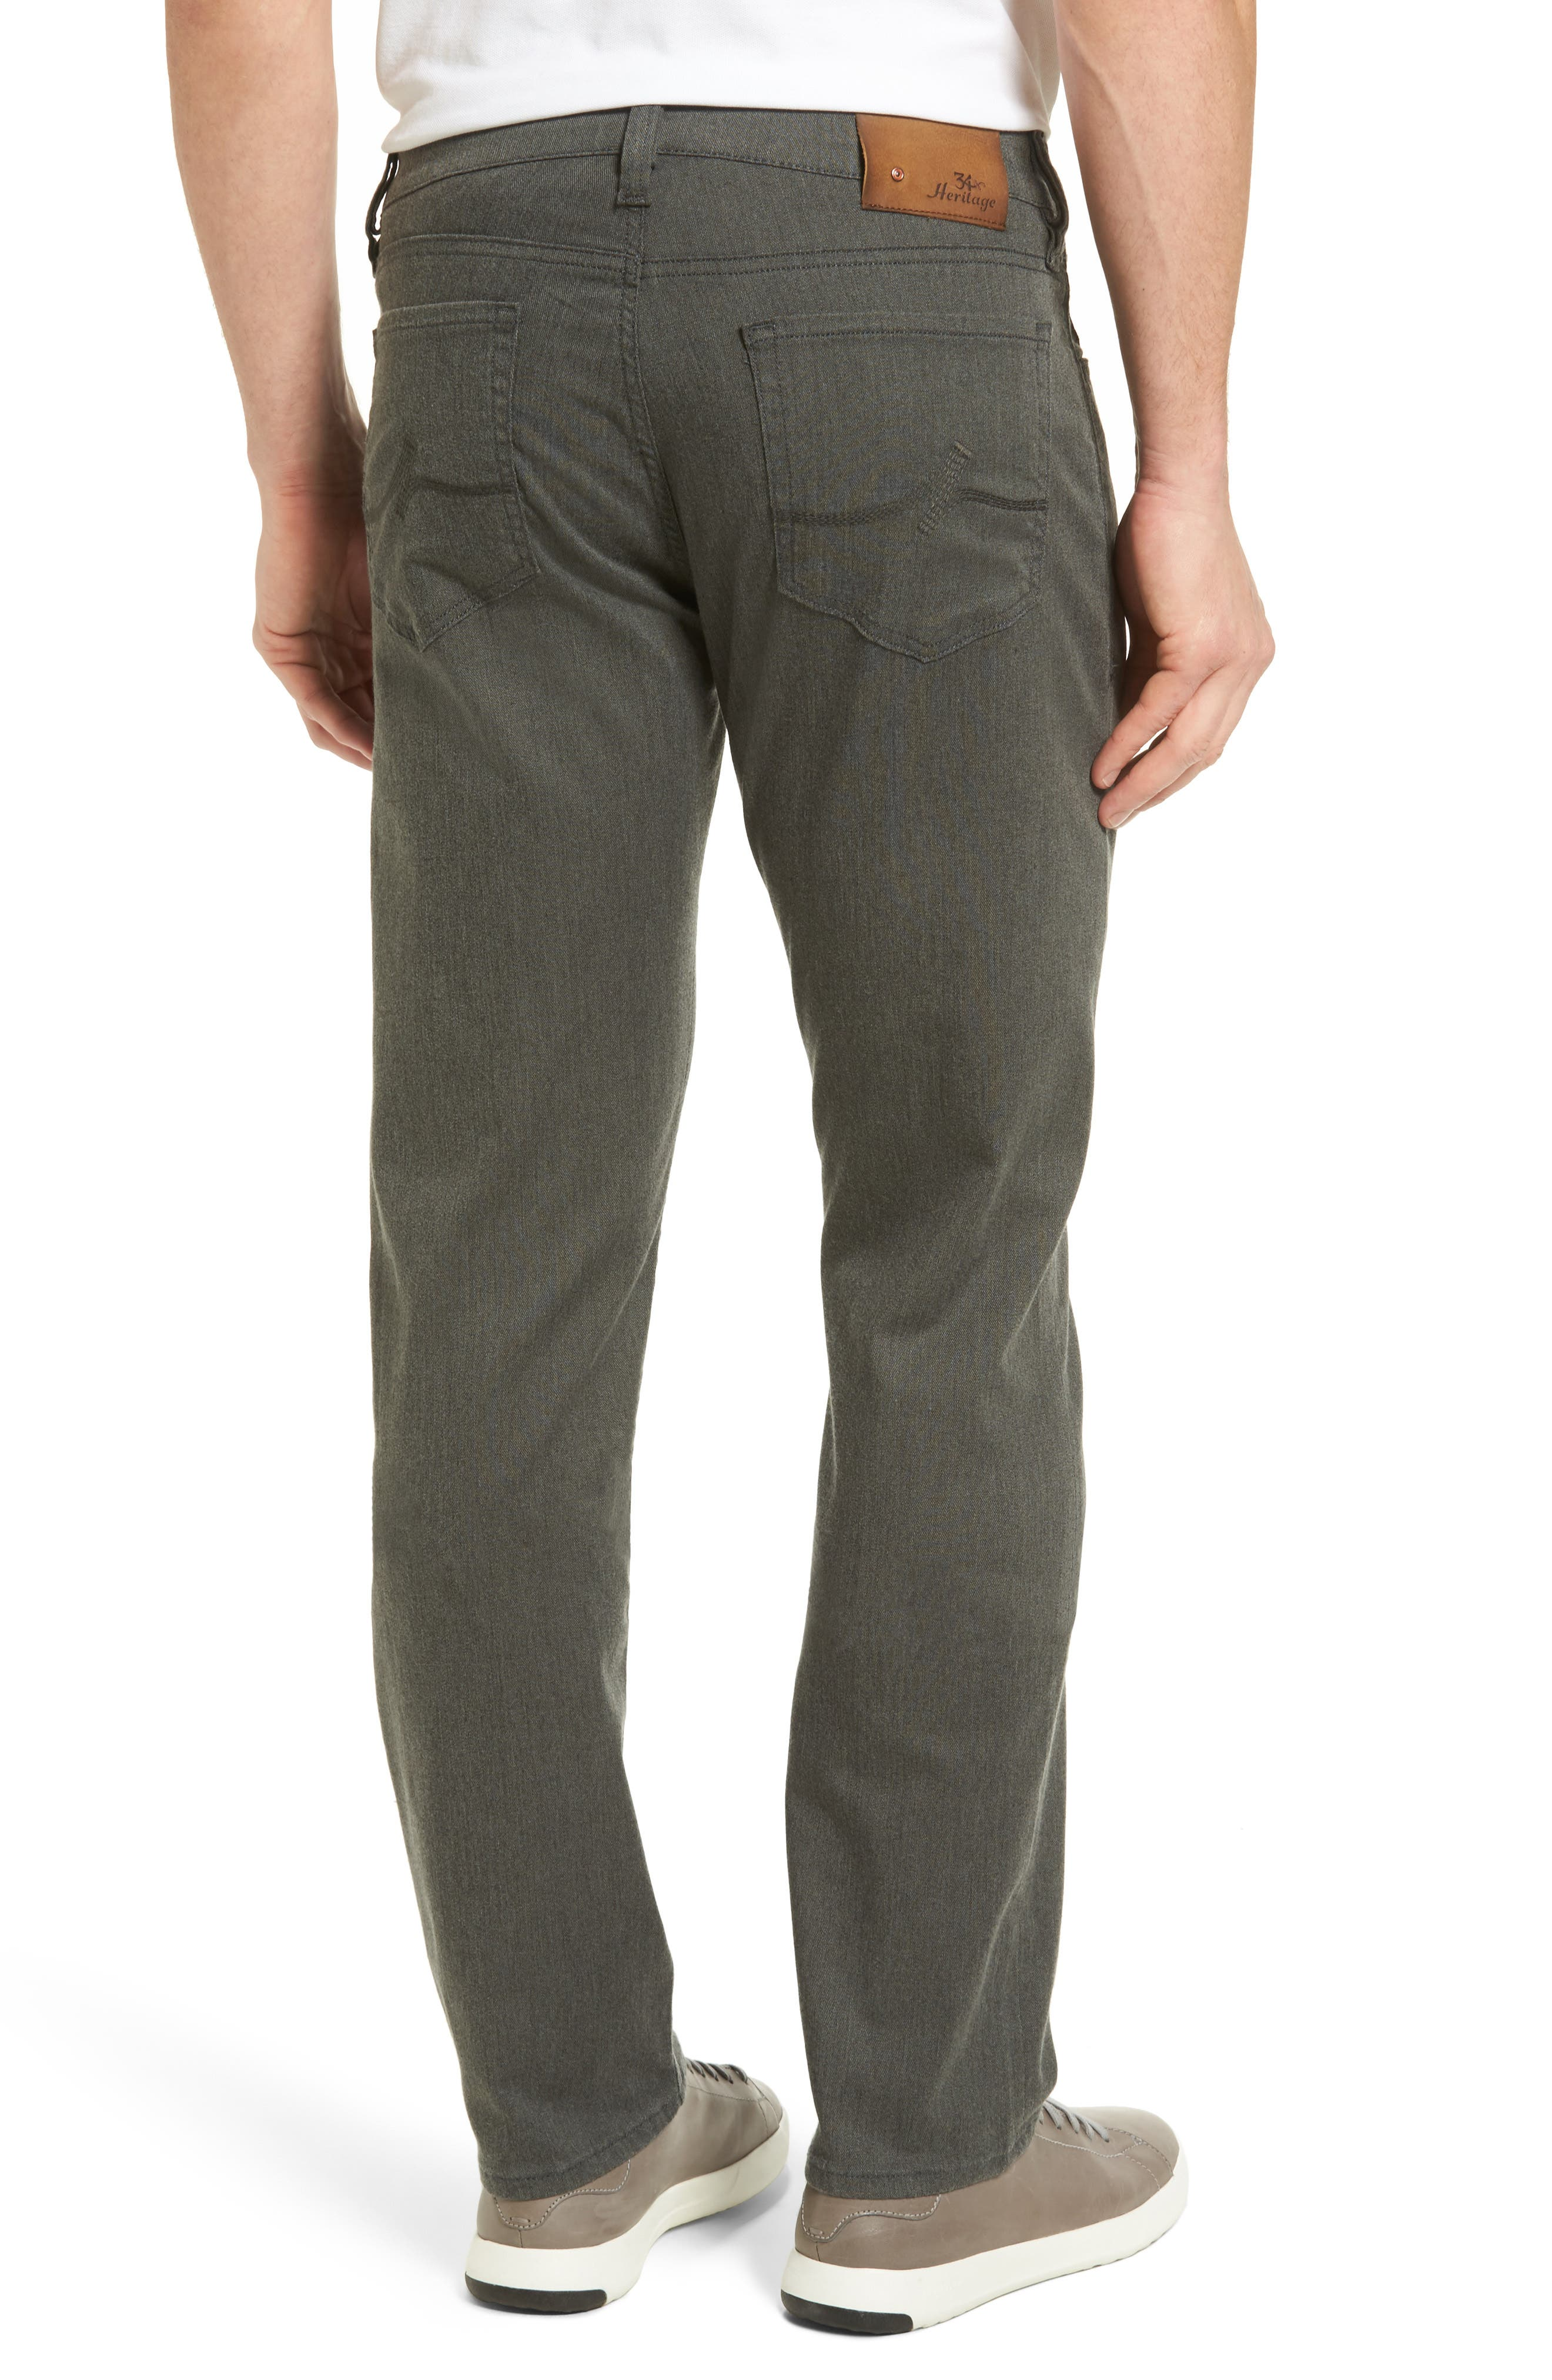 Courage Straight Leg Jeans,                             Alternate thumbnail 2, color,                             GREY LUXE